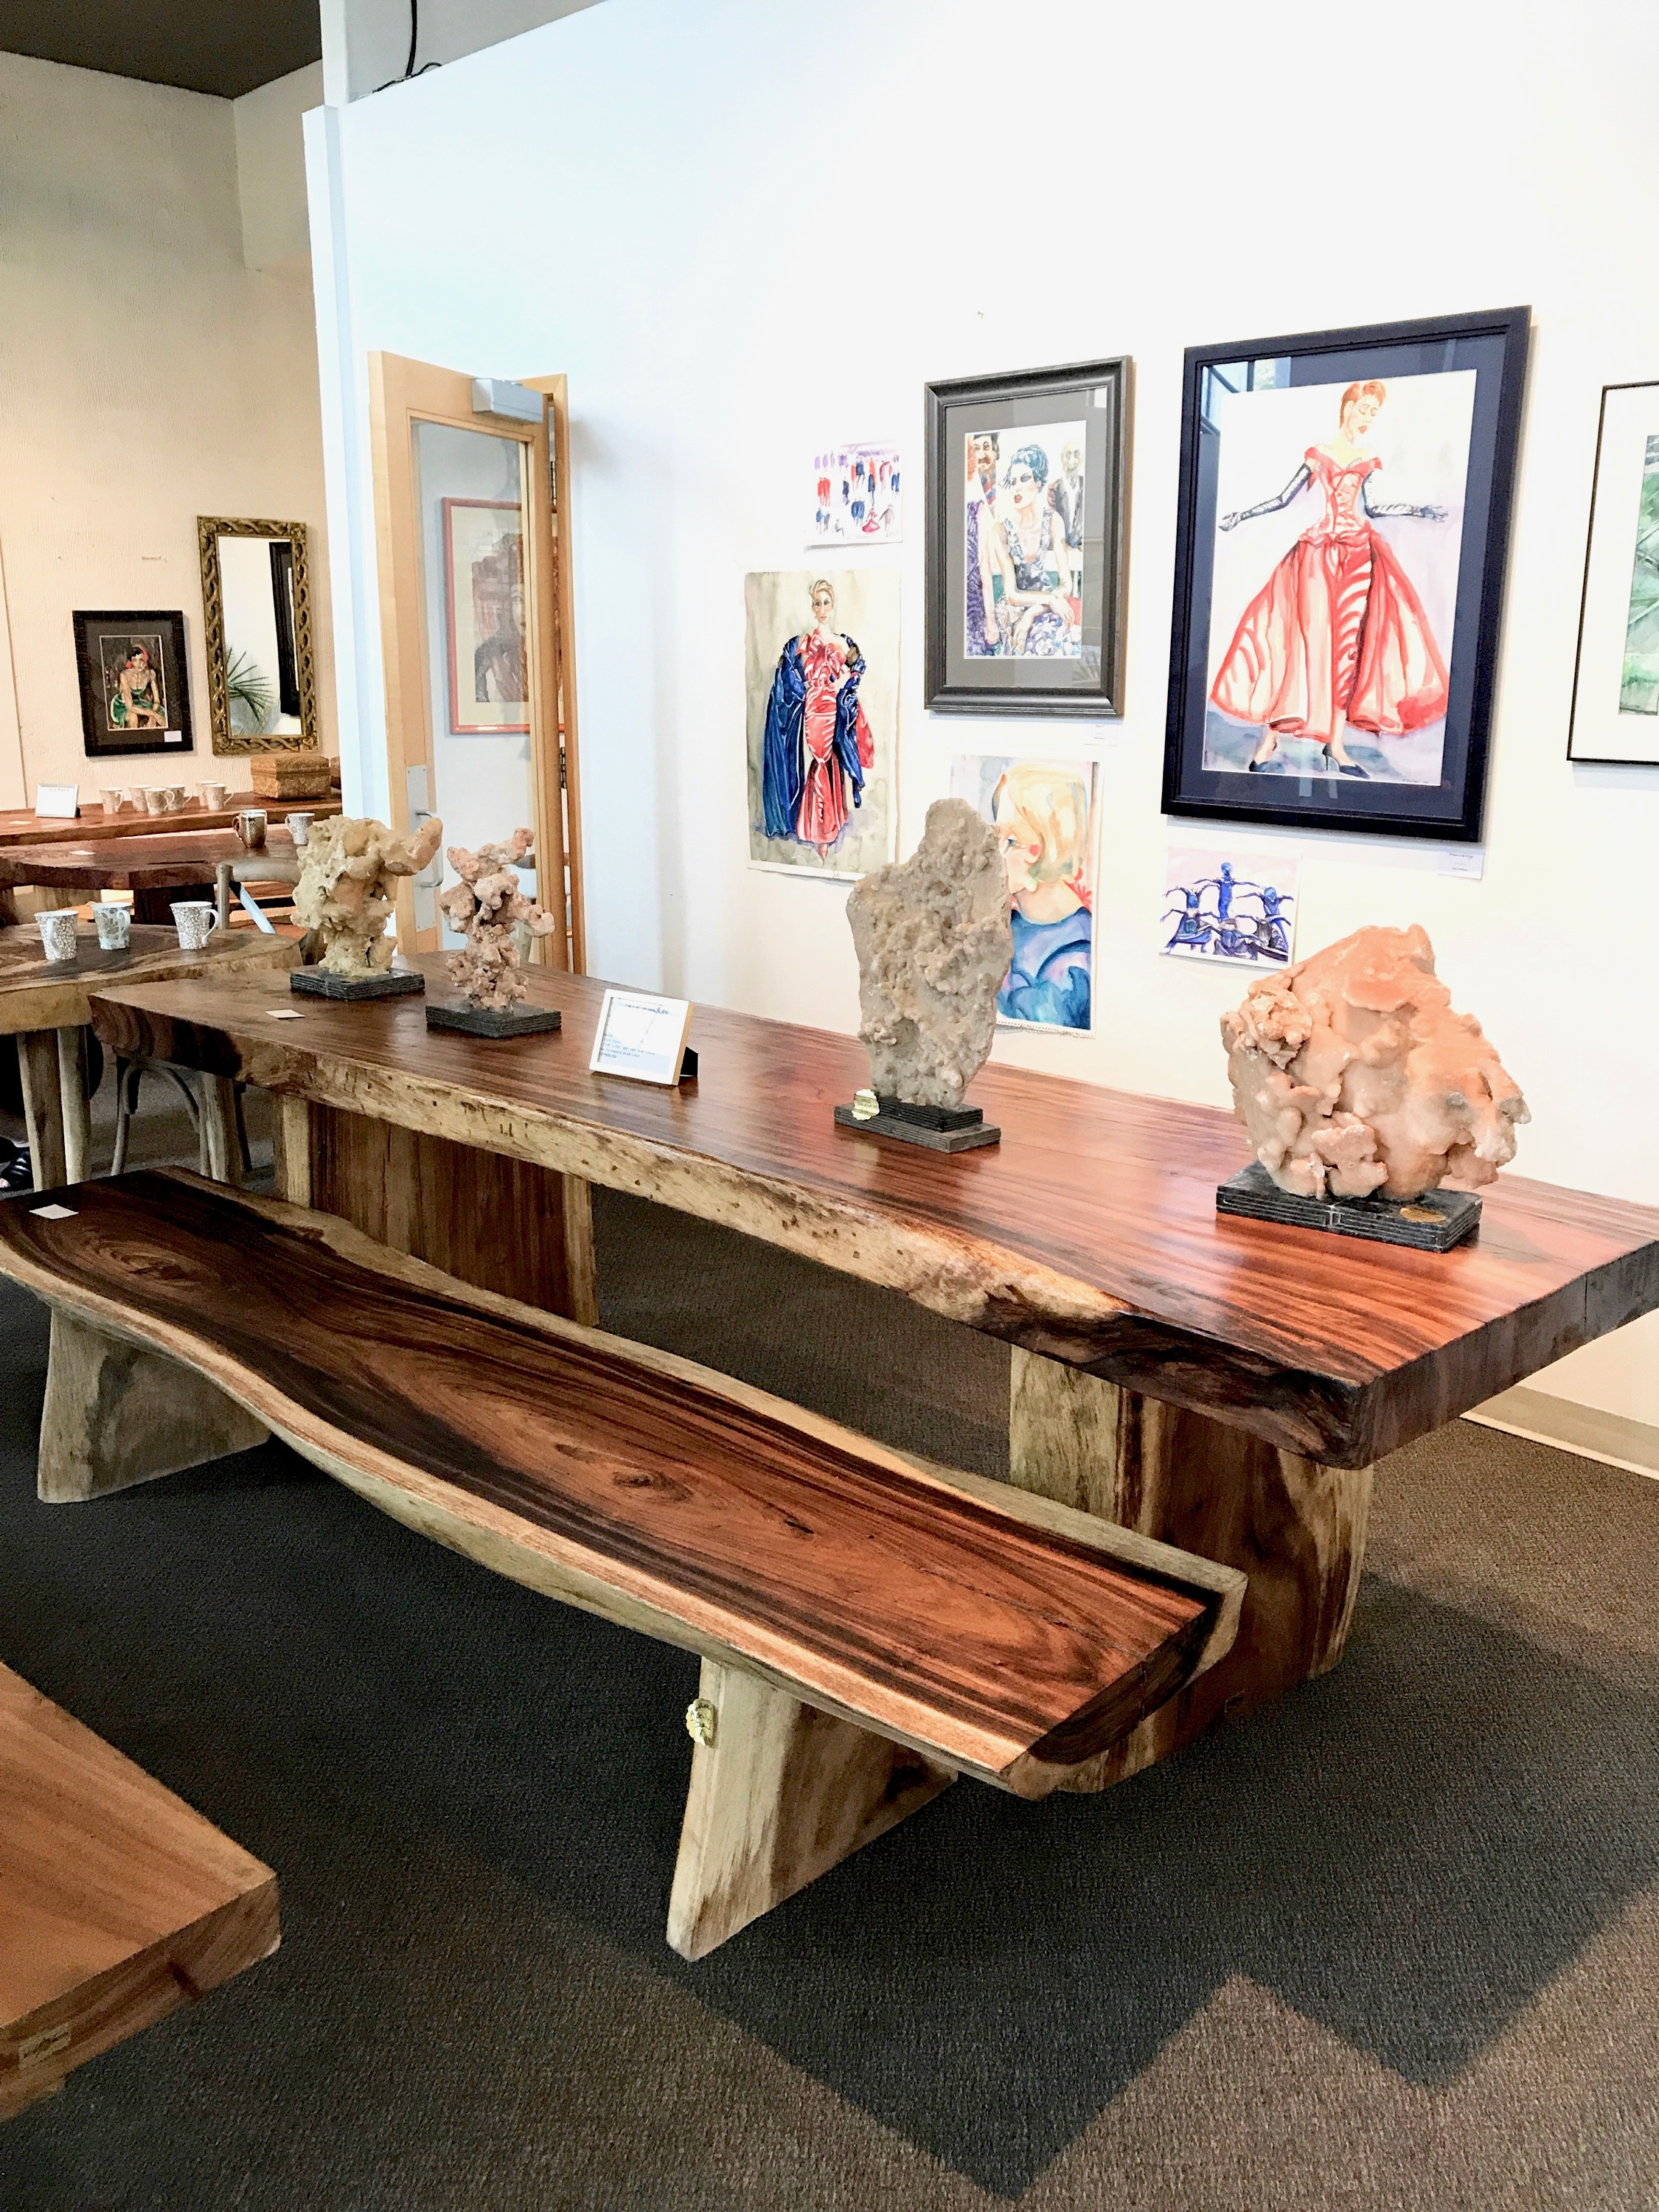 Majestic Live Edge DIning table. Single slab wood dining table. Blue Moon Furniture Store, Winnipeg, Manitoba, Canada. Modern, Contemporary cool luxury furniture. Local design,2.jpg